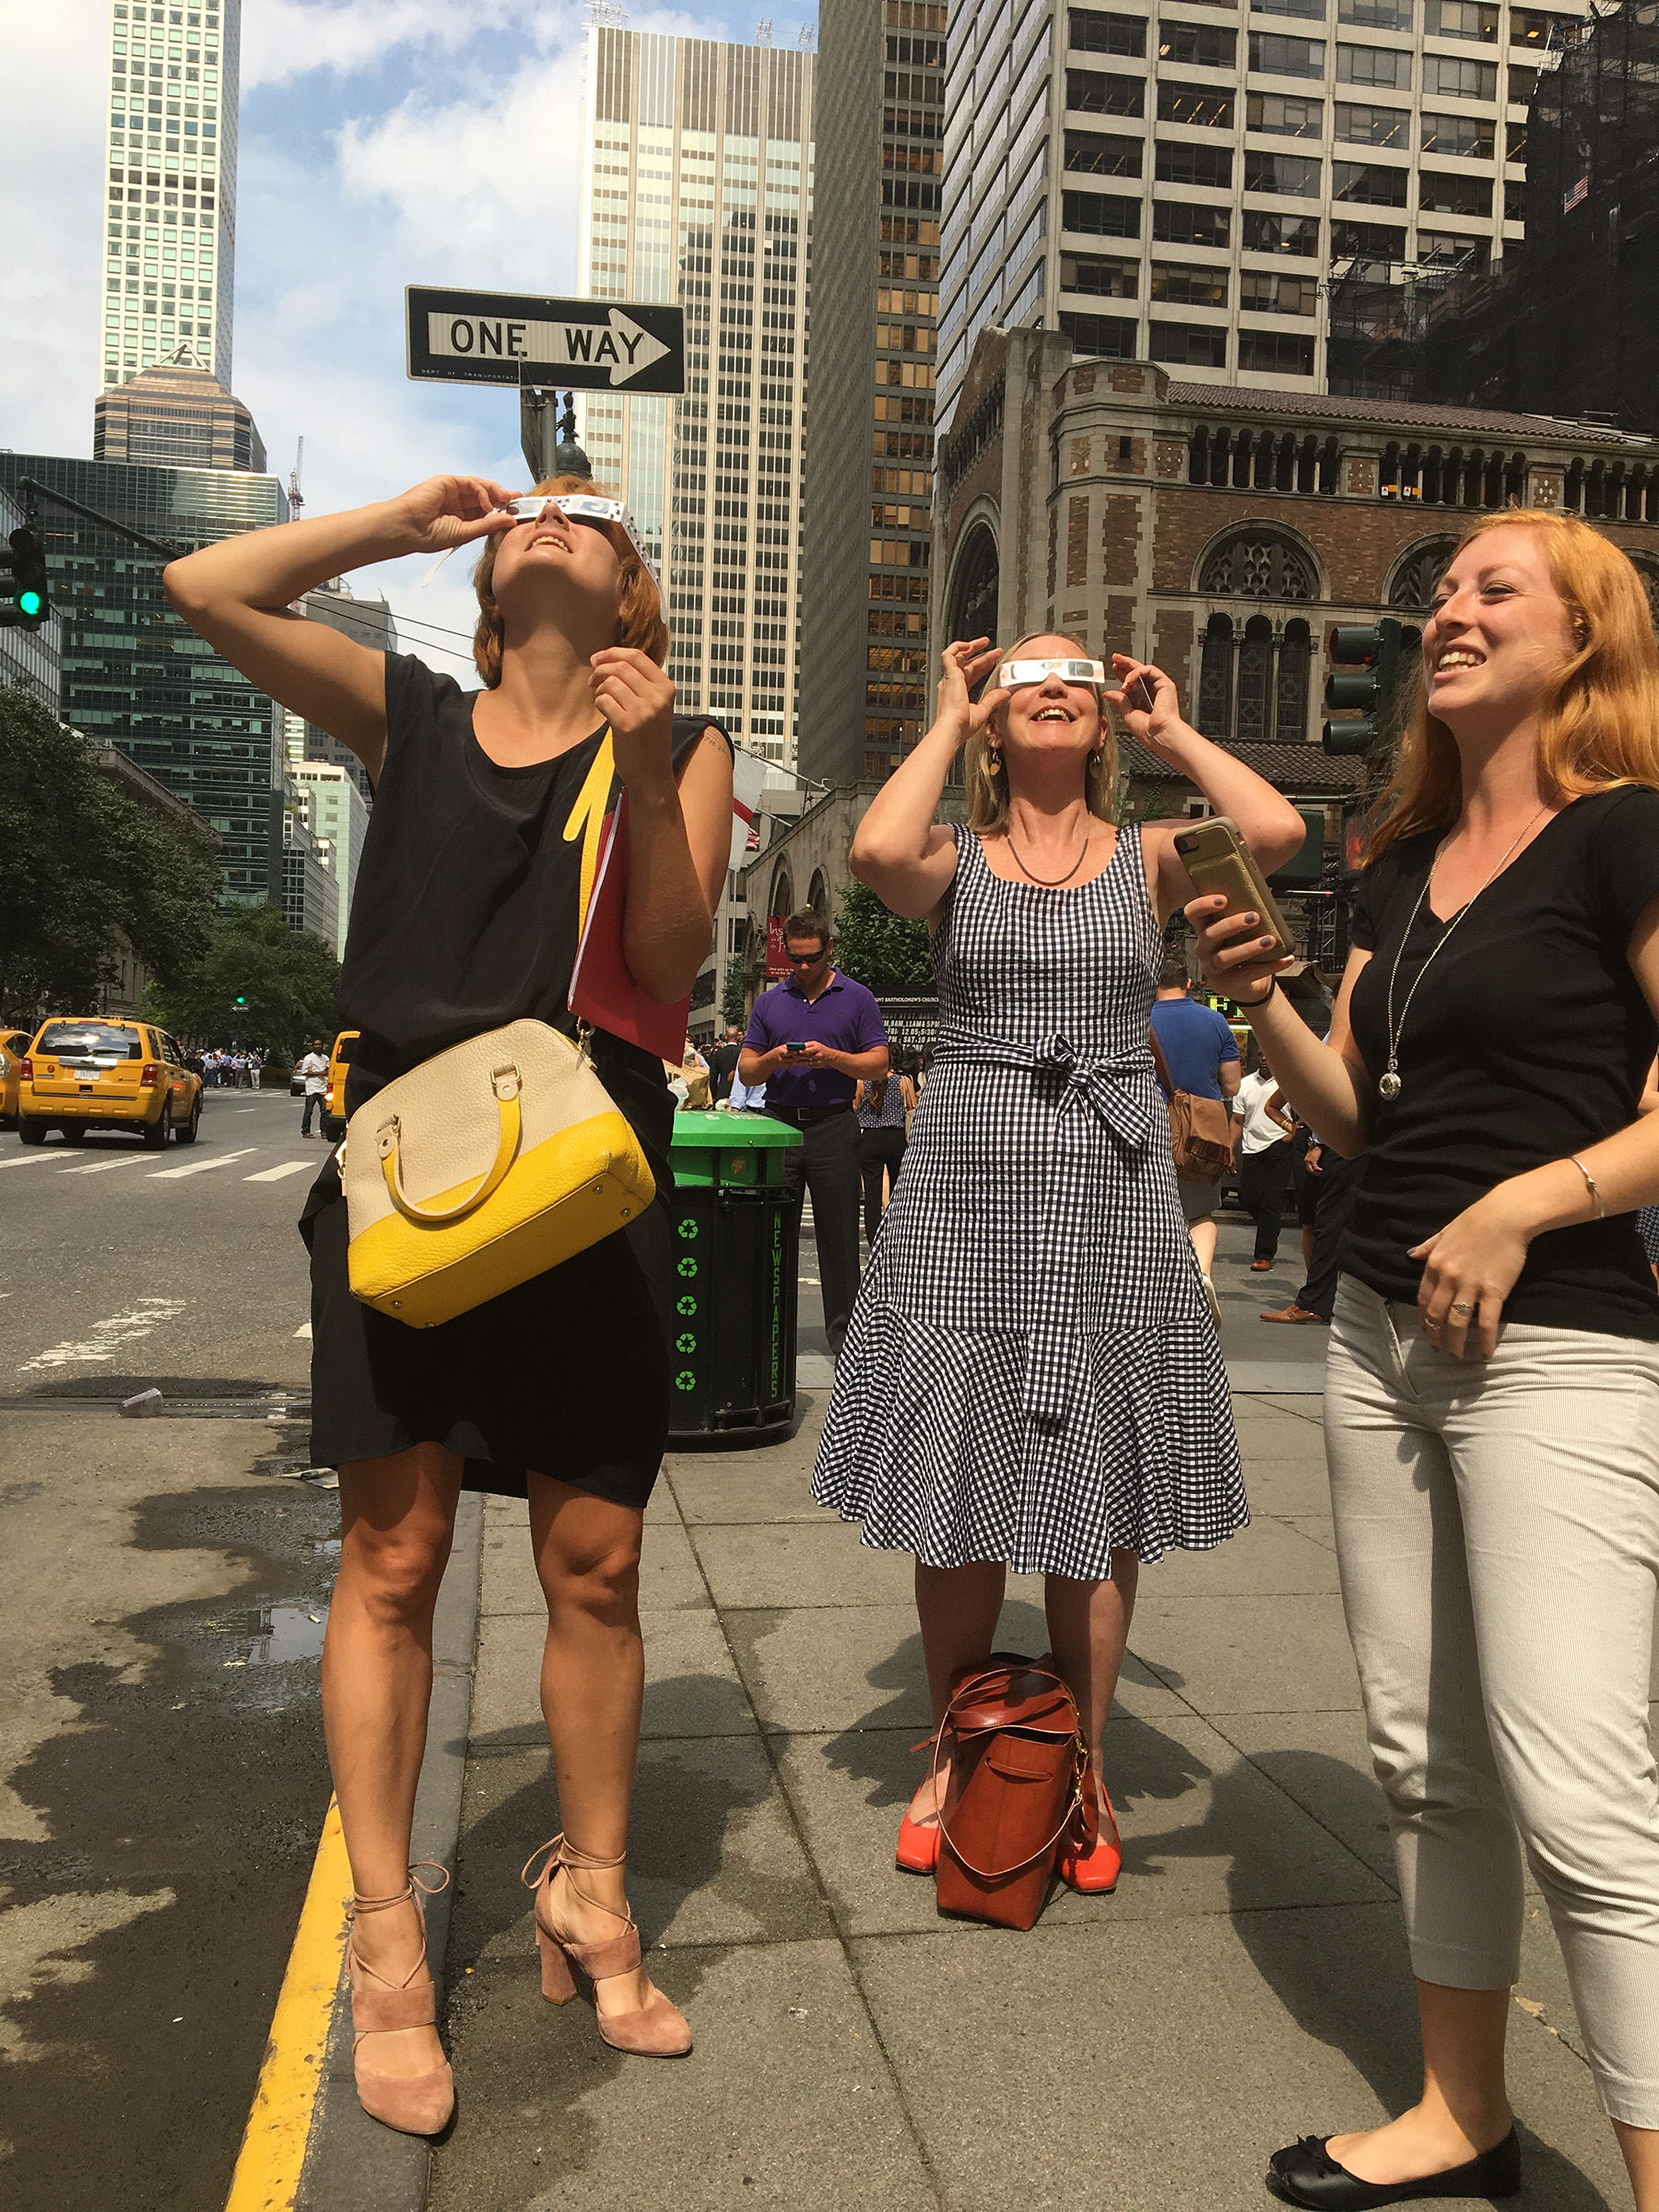 Eclipse watching in NYC Photographer: Erin Buchanan